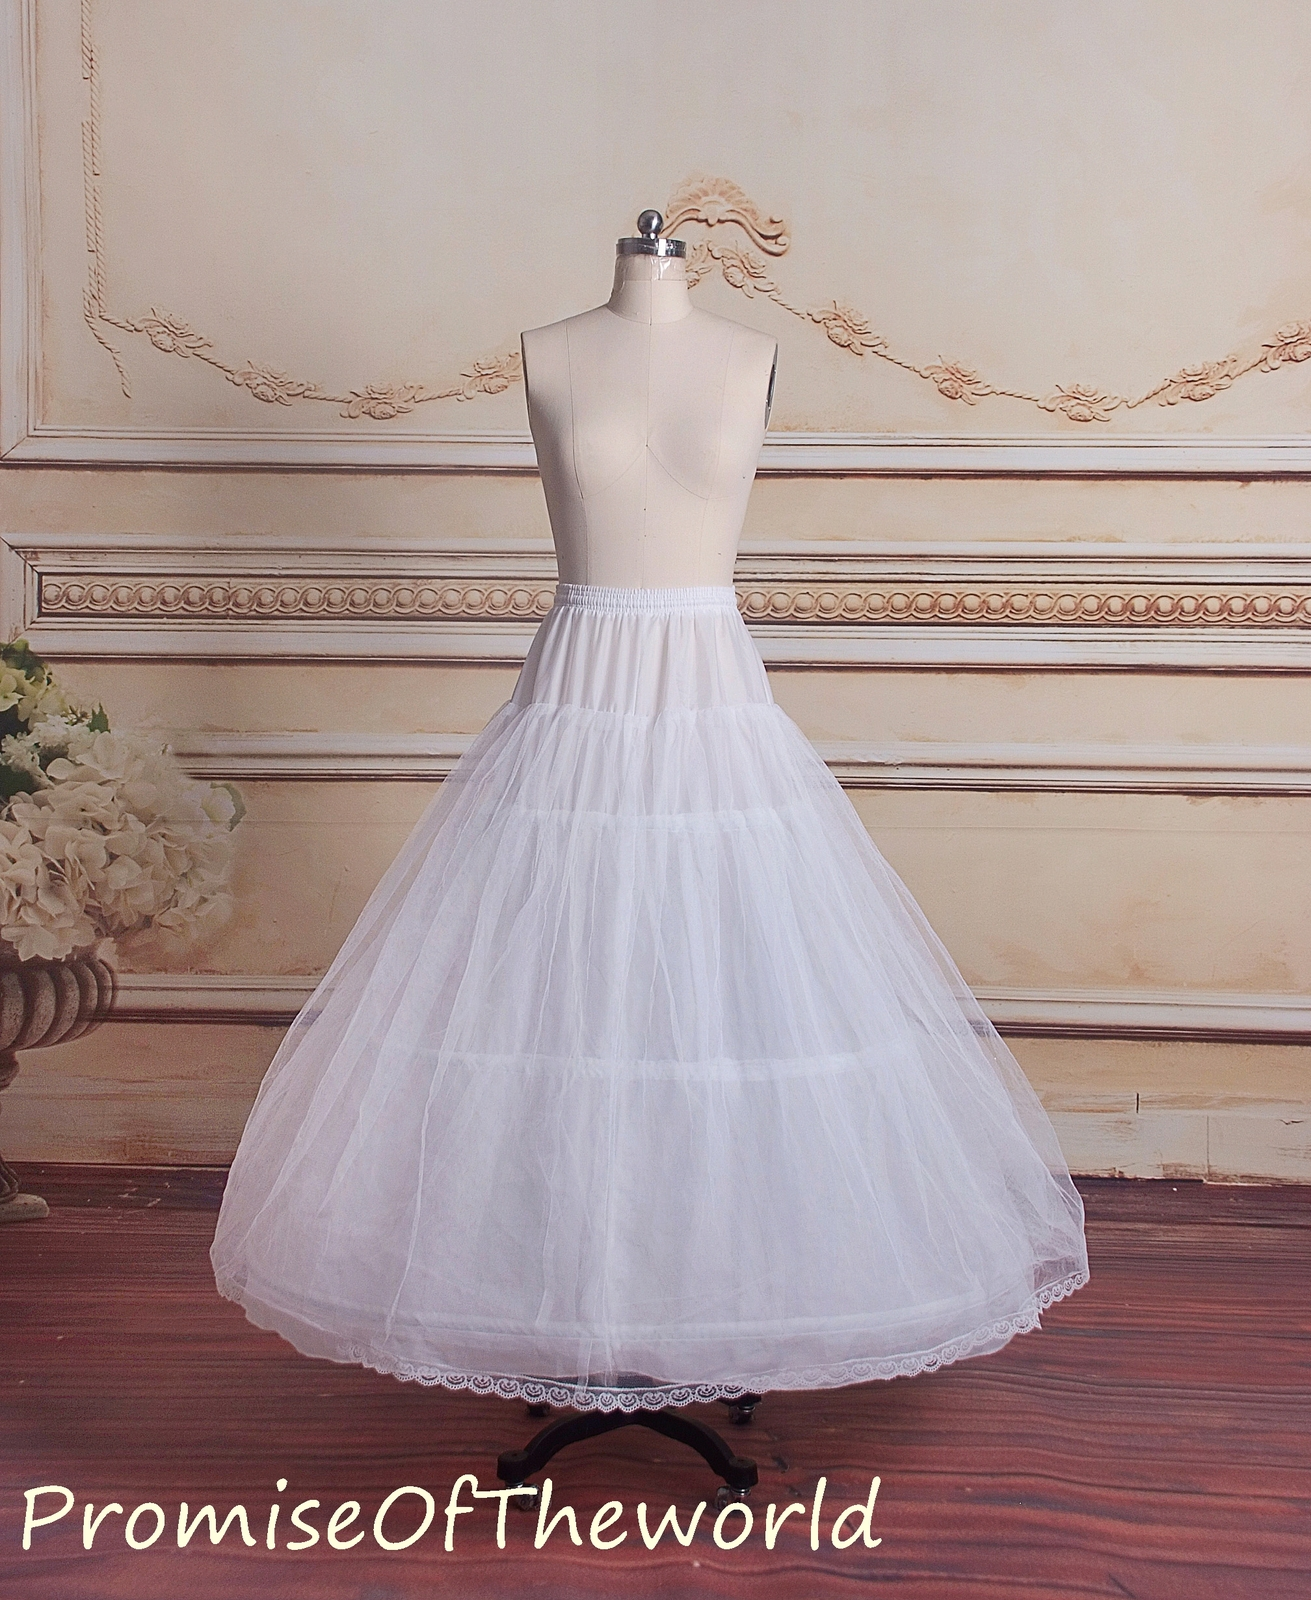 99a5df432de5e Ivory 3 hoops petticoat for ball gown and 50 similar items